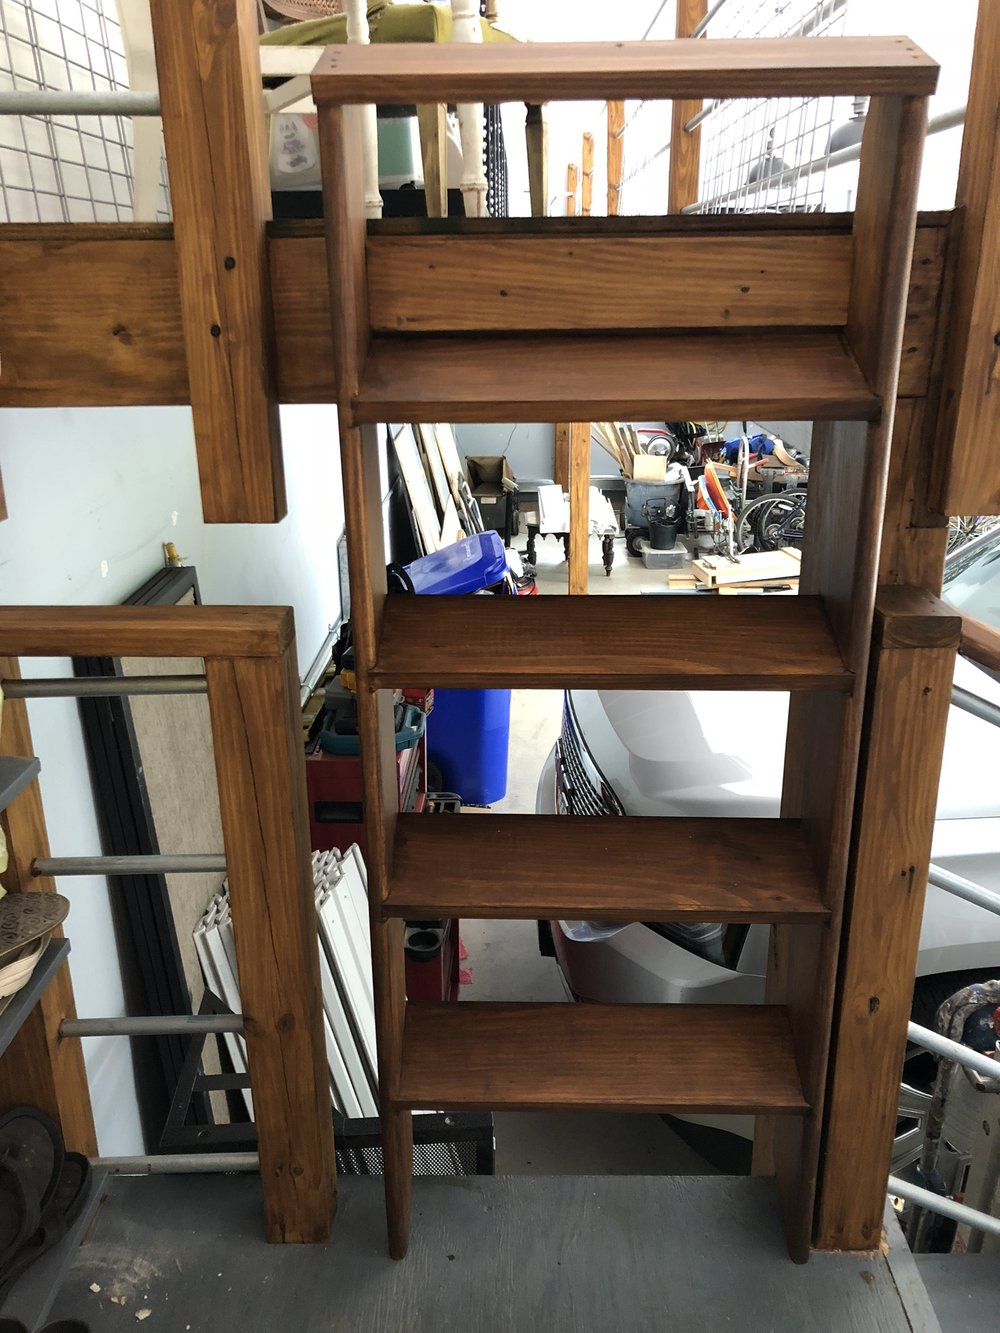 When in storage mode, the ladder is part of the railing for the landing but then pulls out to access the loft.